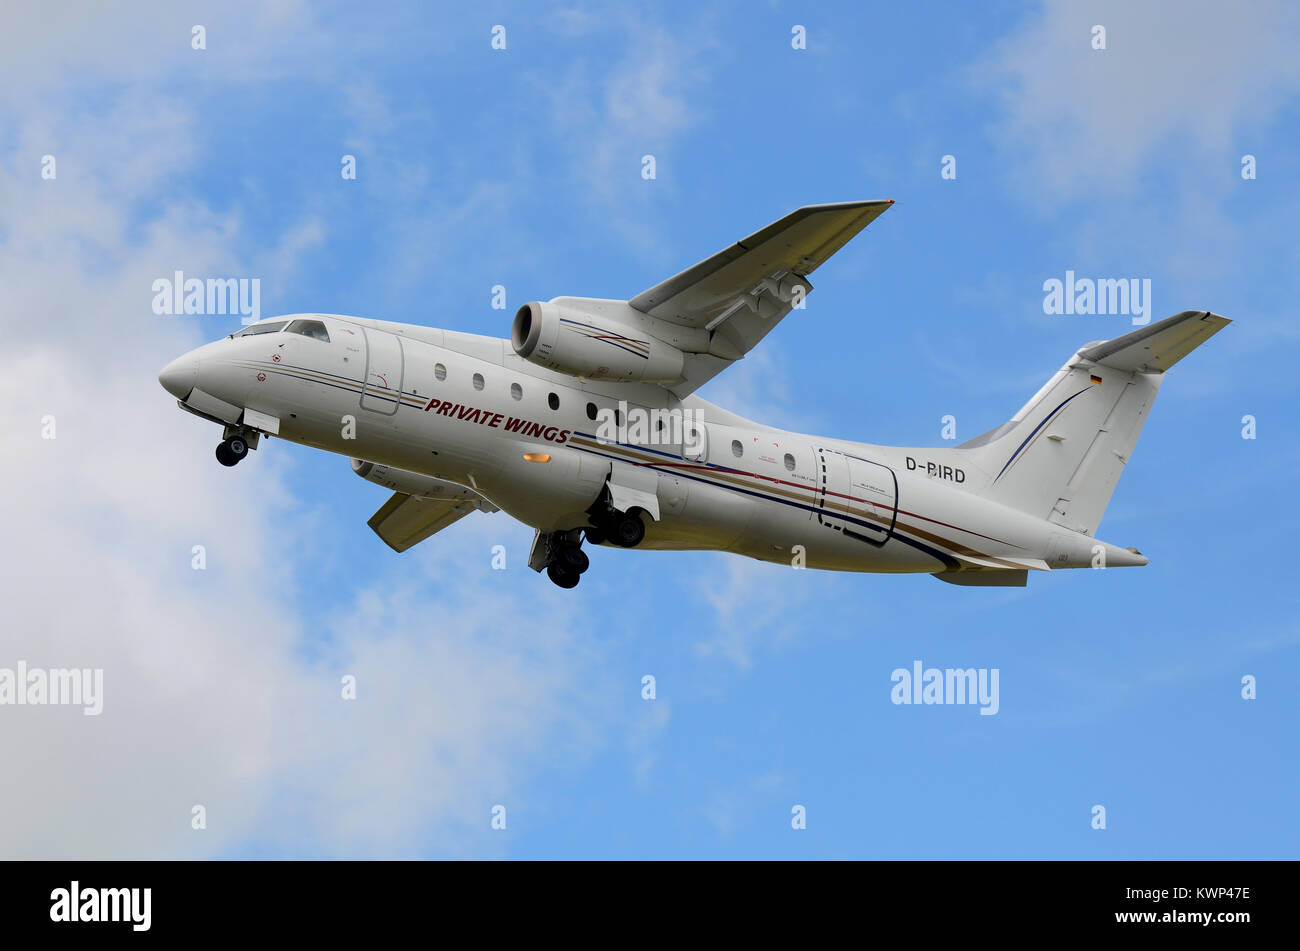 Private Wings Fairchild Dornier 328JET. 328JET is a commuter airliner based upon the turboprop-powered Dornier 328. - Stock Image